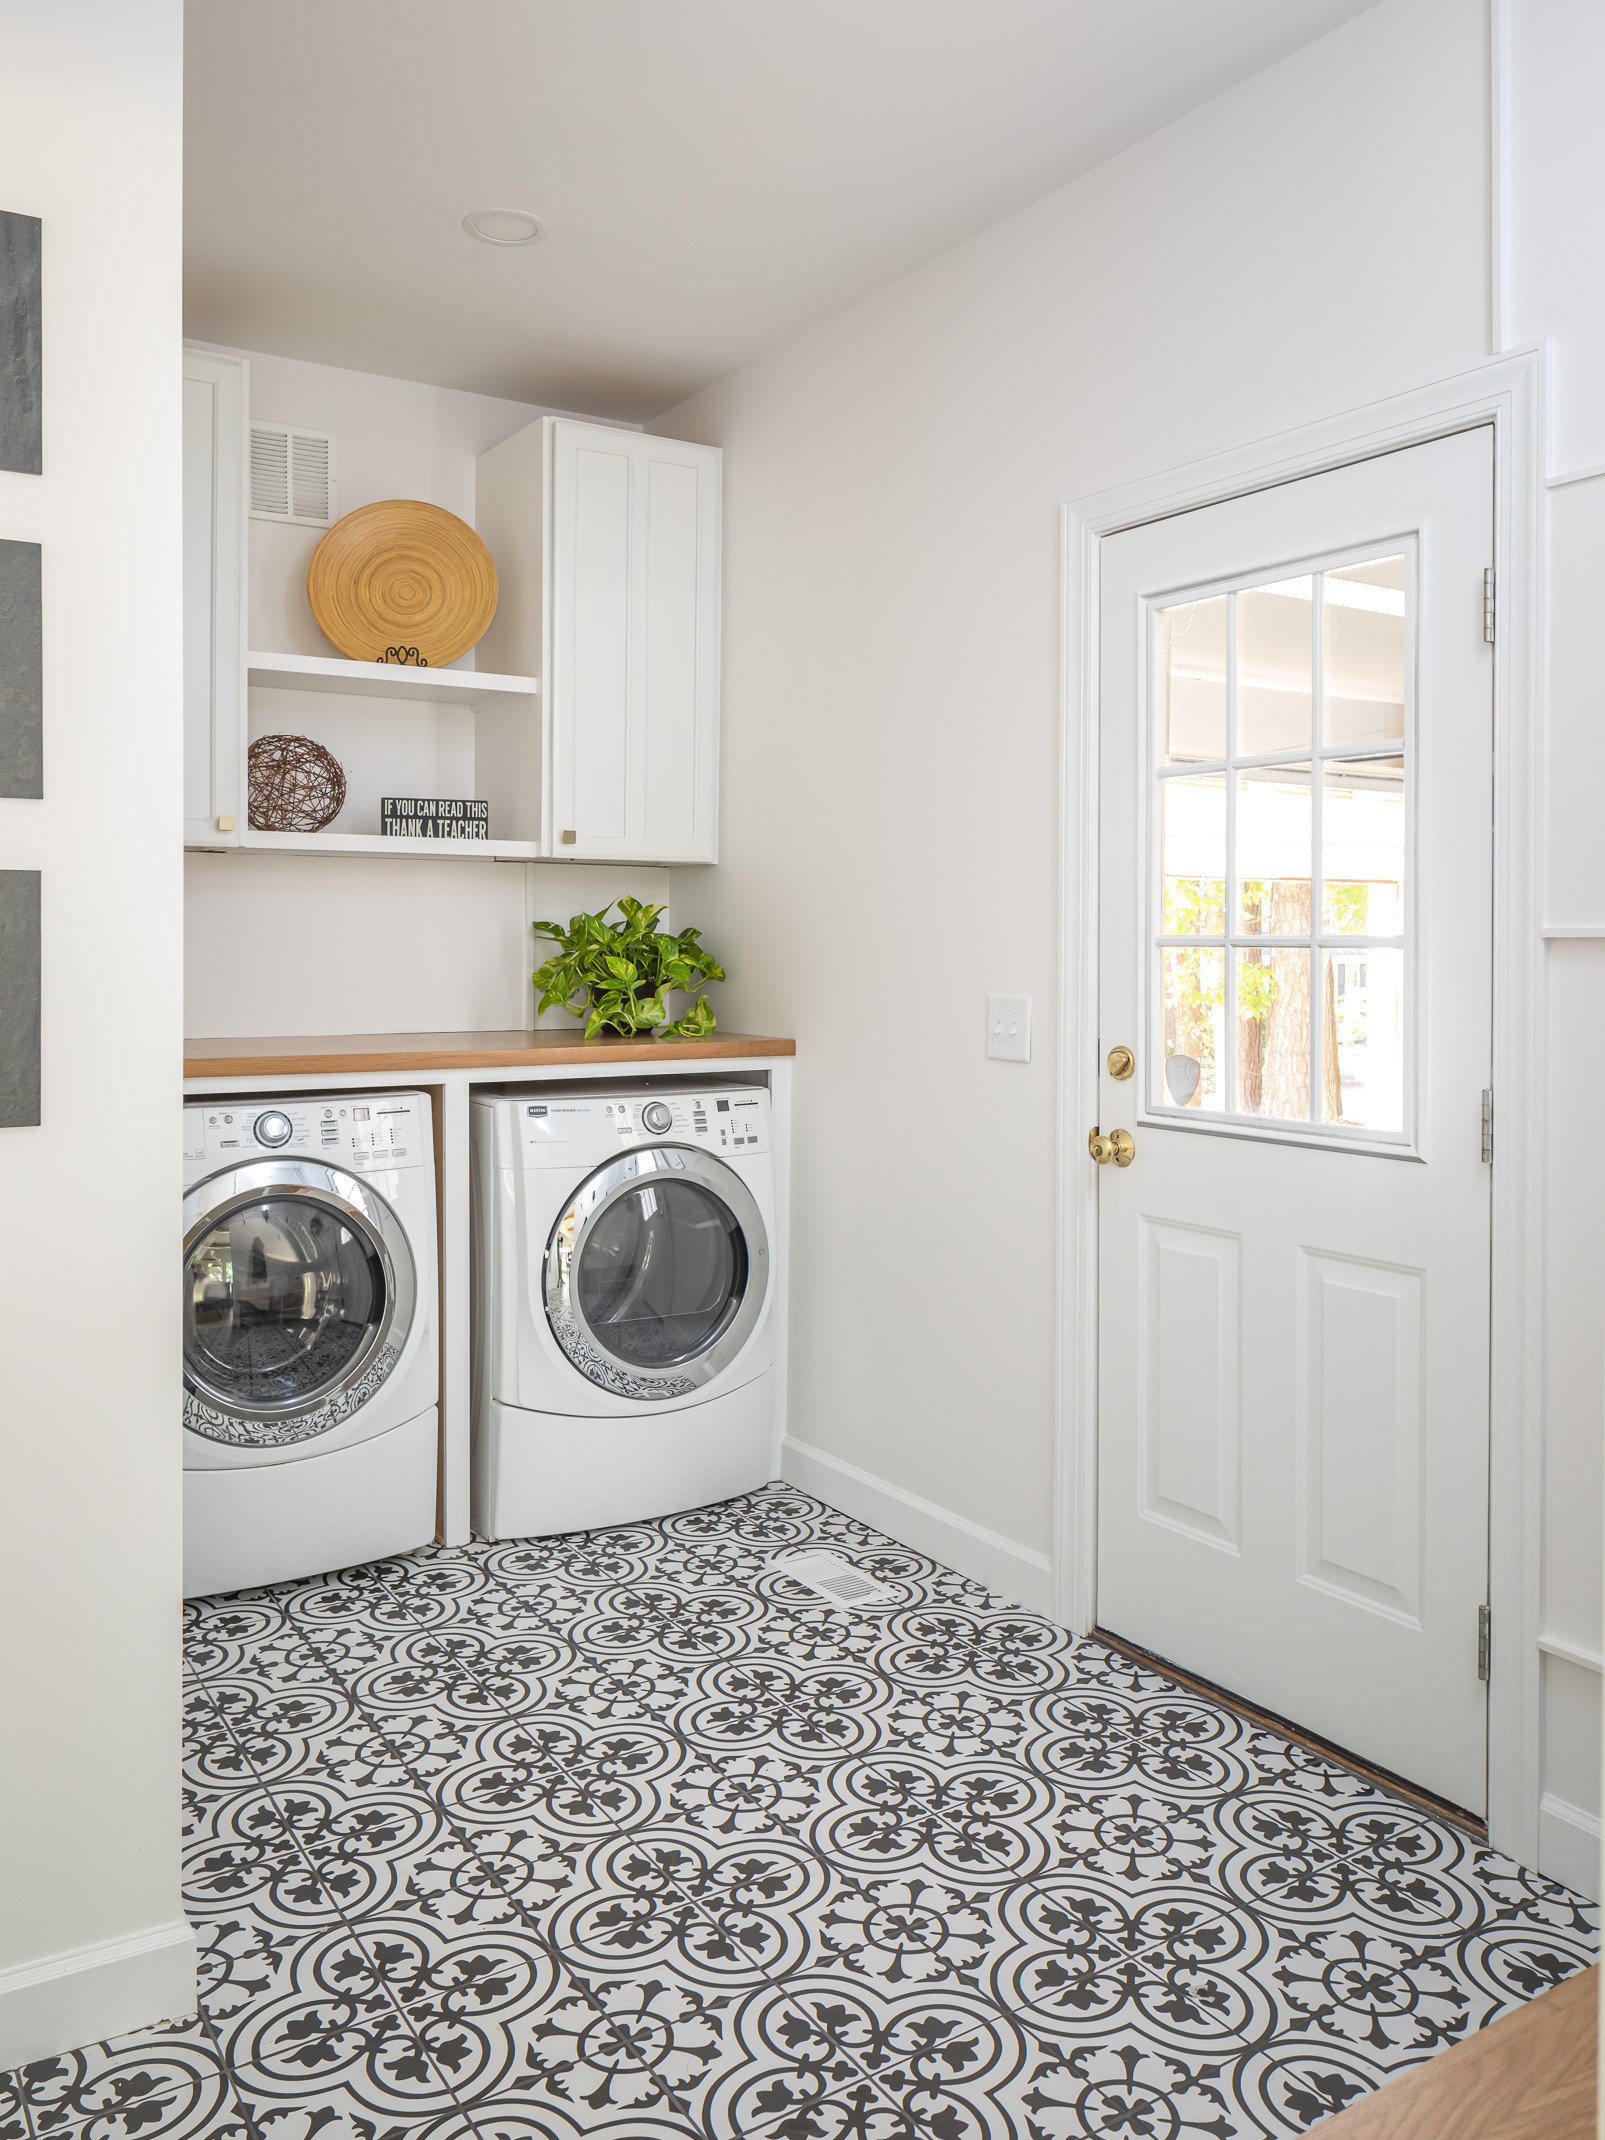 75 Beautiful Farmhouse Laundry Room Pictures Ideas February 2021 Houzz